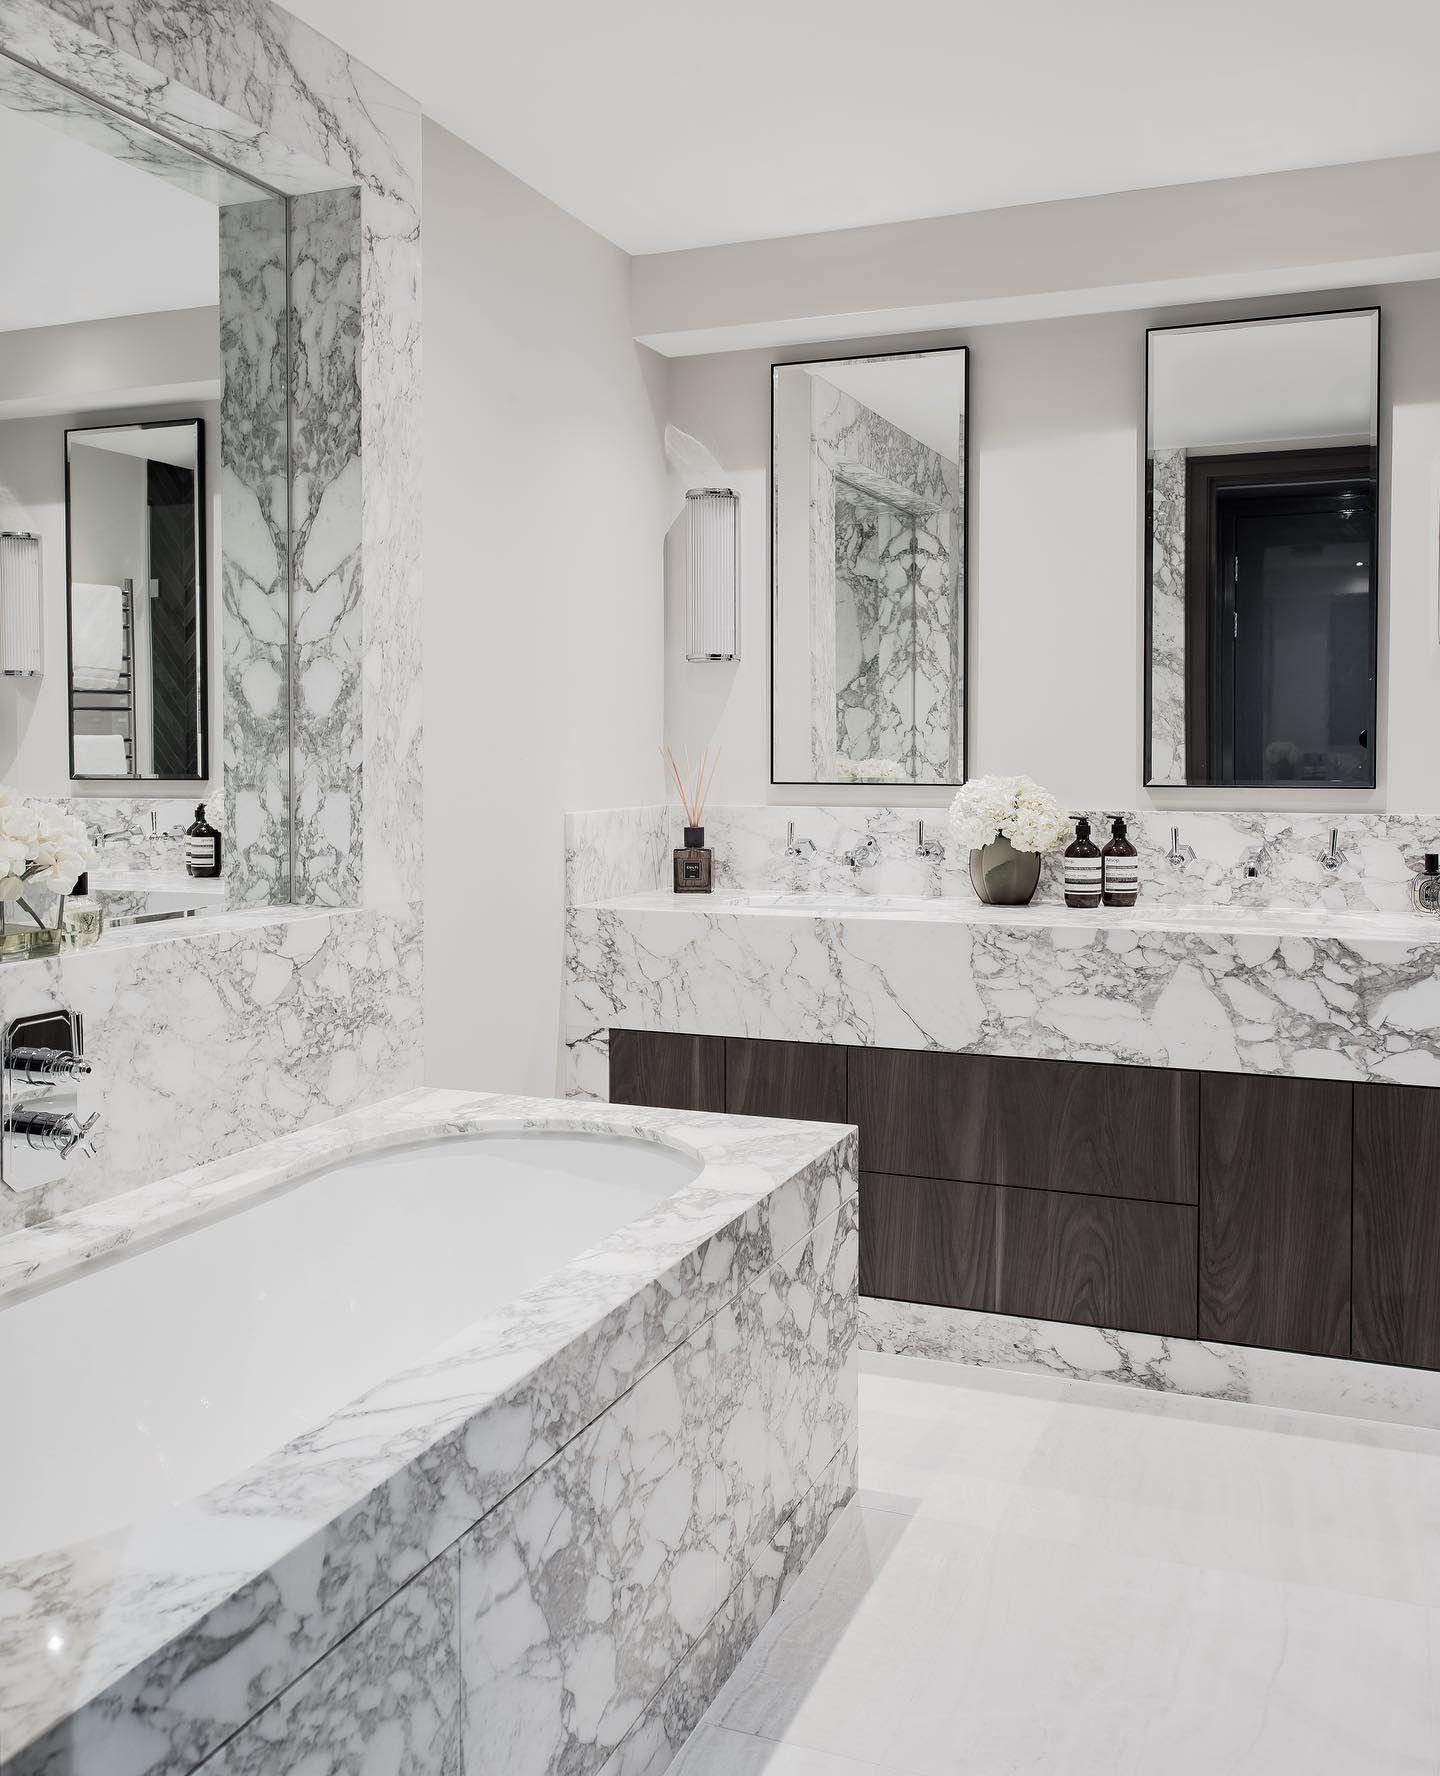 Bathroom en-suite at our St Johns Wood project made from two beautiful slabs of Calacatta Vagli which we sourced at the start of the year and used a mix of real marble and porcelain tiles to complete the look but keep functionality in mind. Sometimes it takes months to complete a project like this but always so worth the wait. • • • #interiordesign #marble #bathroomdesign #interiorlovers #topstylefiles #finditstyleit #interiordetails #interiorforinspo #interiorstylist #houseenvy #homedetails #ho